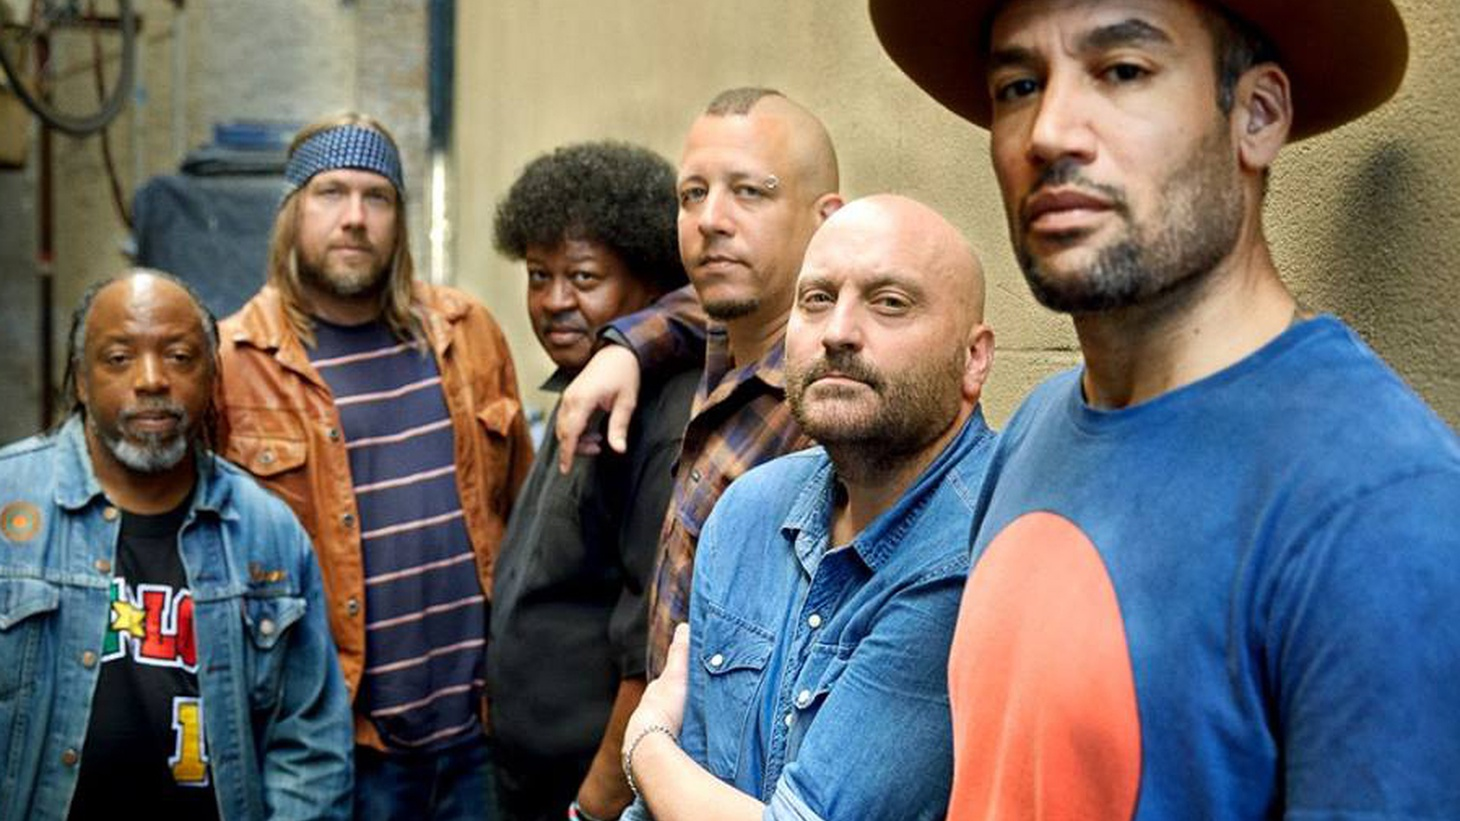 Ben Harper returns to our studio after reuniting The Innocent Criminals and releasing their first studio album in eight years.